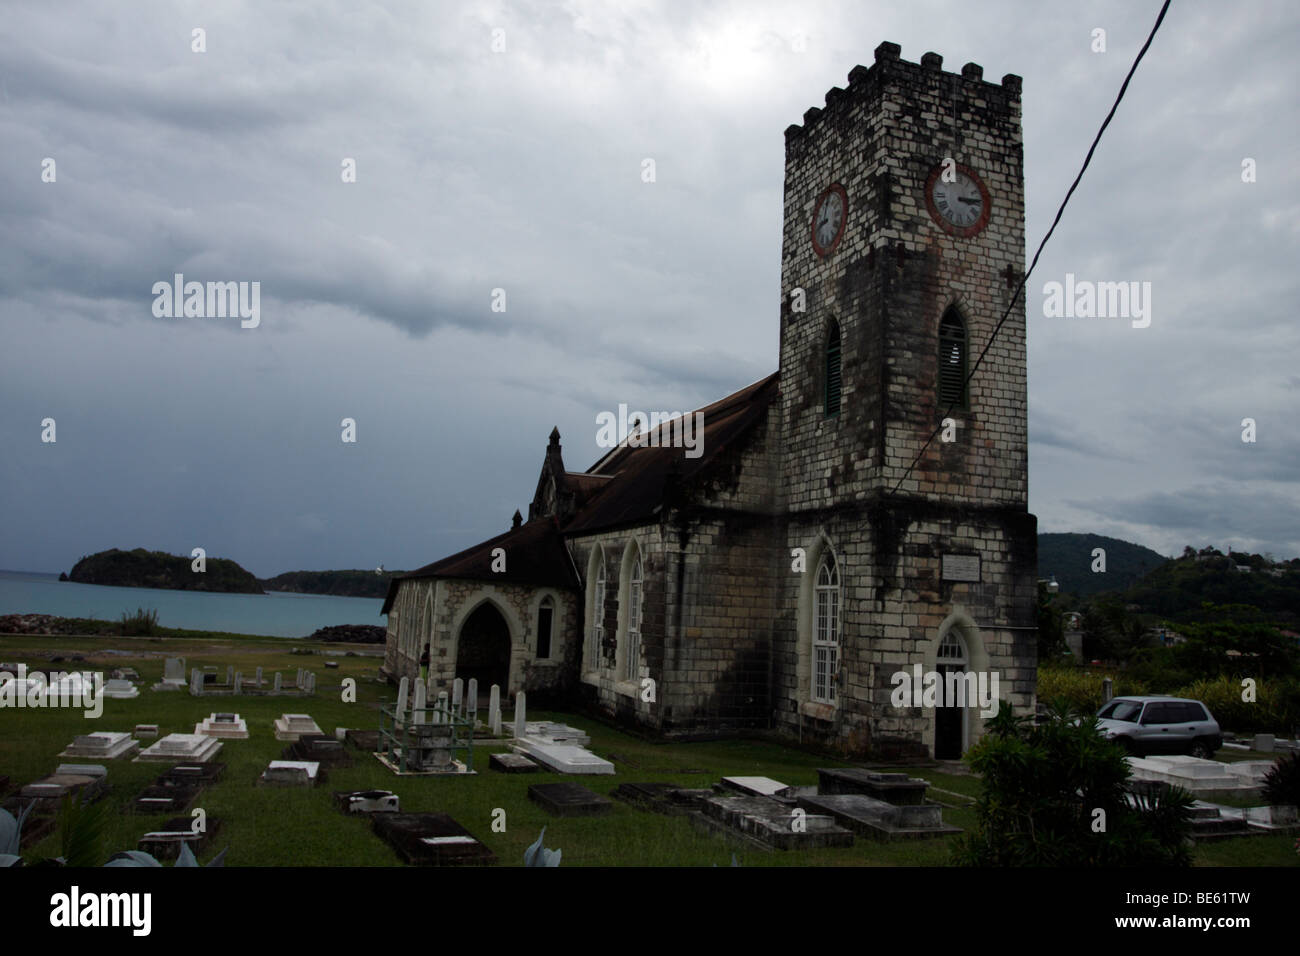 Diocese of Jamaica St. Mary's Parish Church - Stock Image